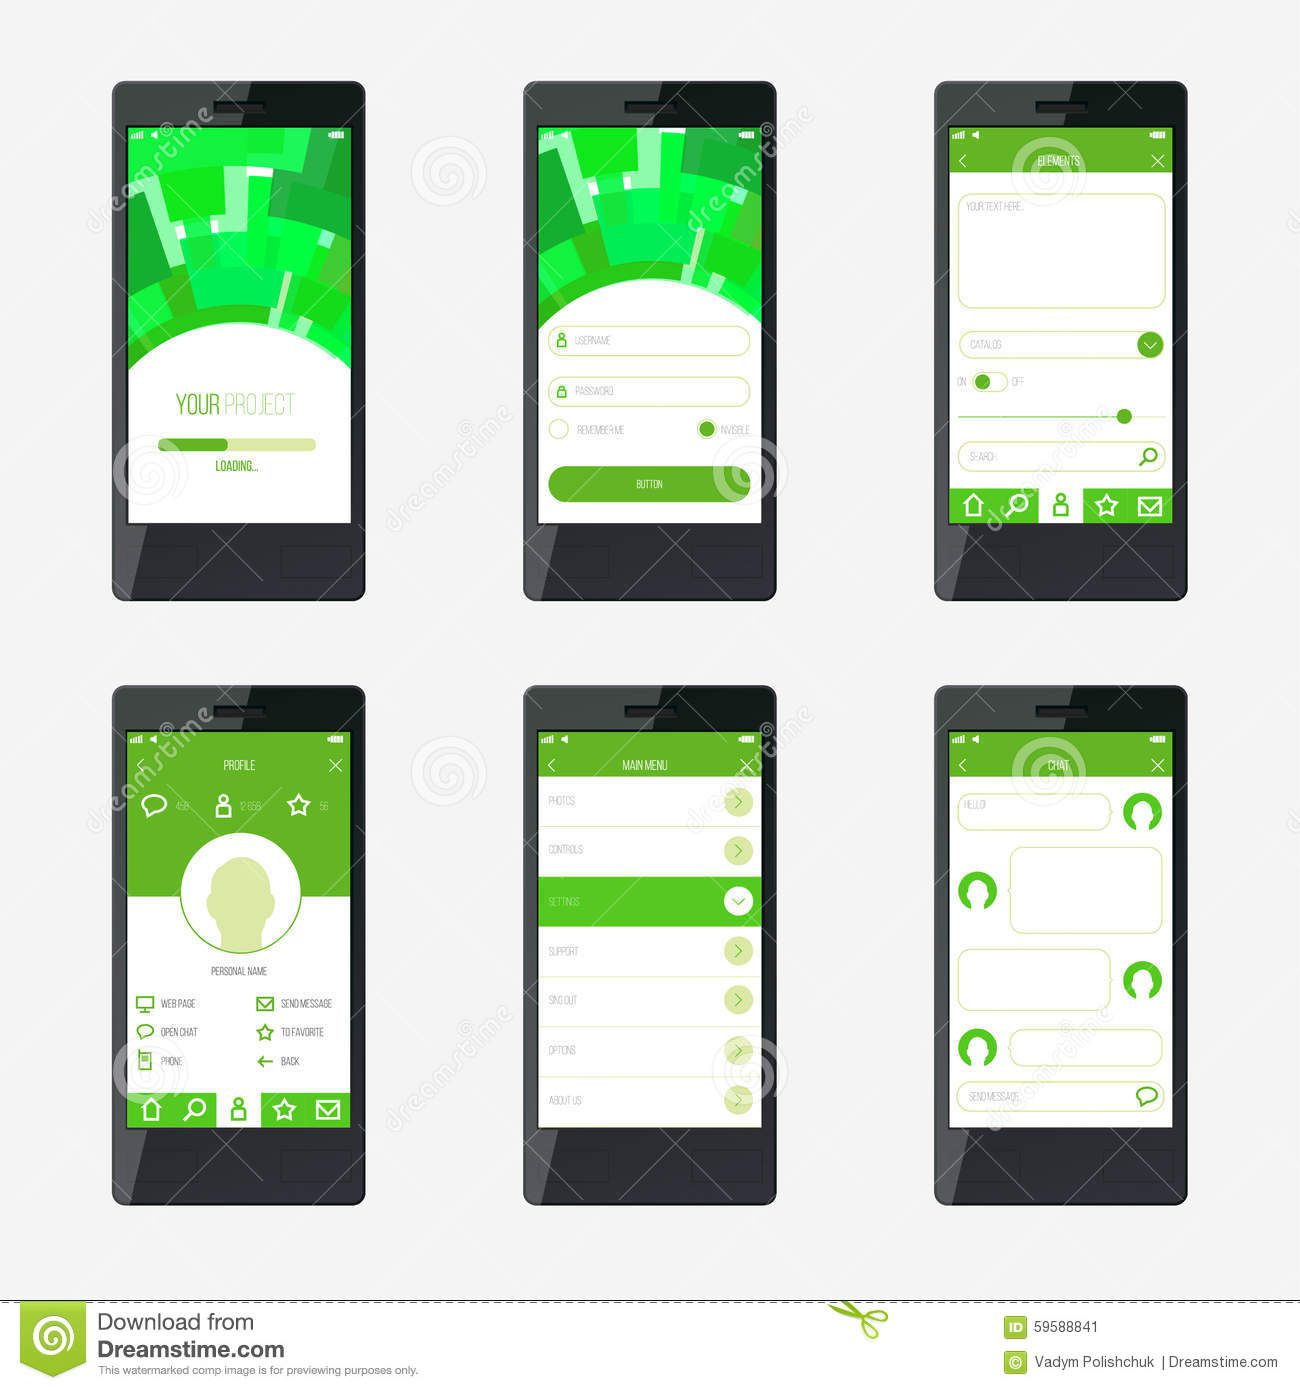 008 Formidable Mobile App Design Template Highest Clarity  Size Free Download Ui PsdFull